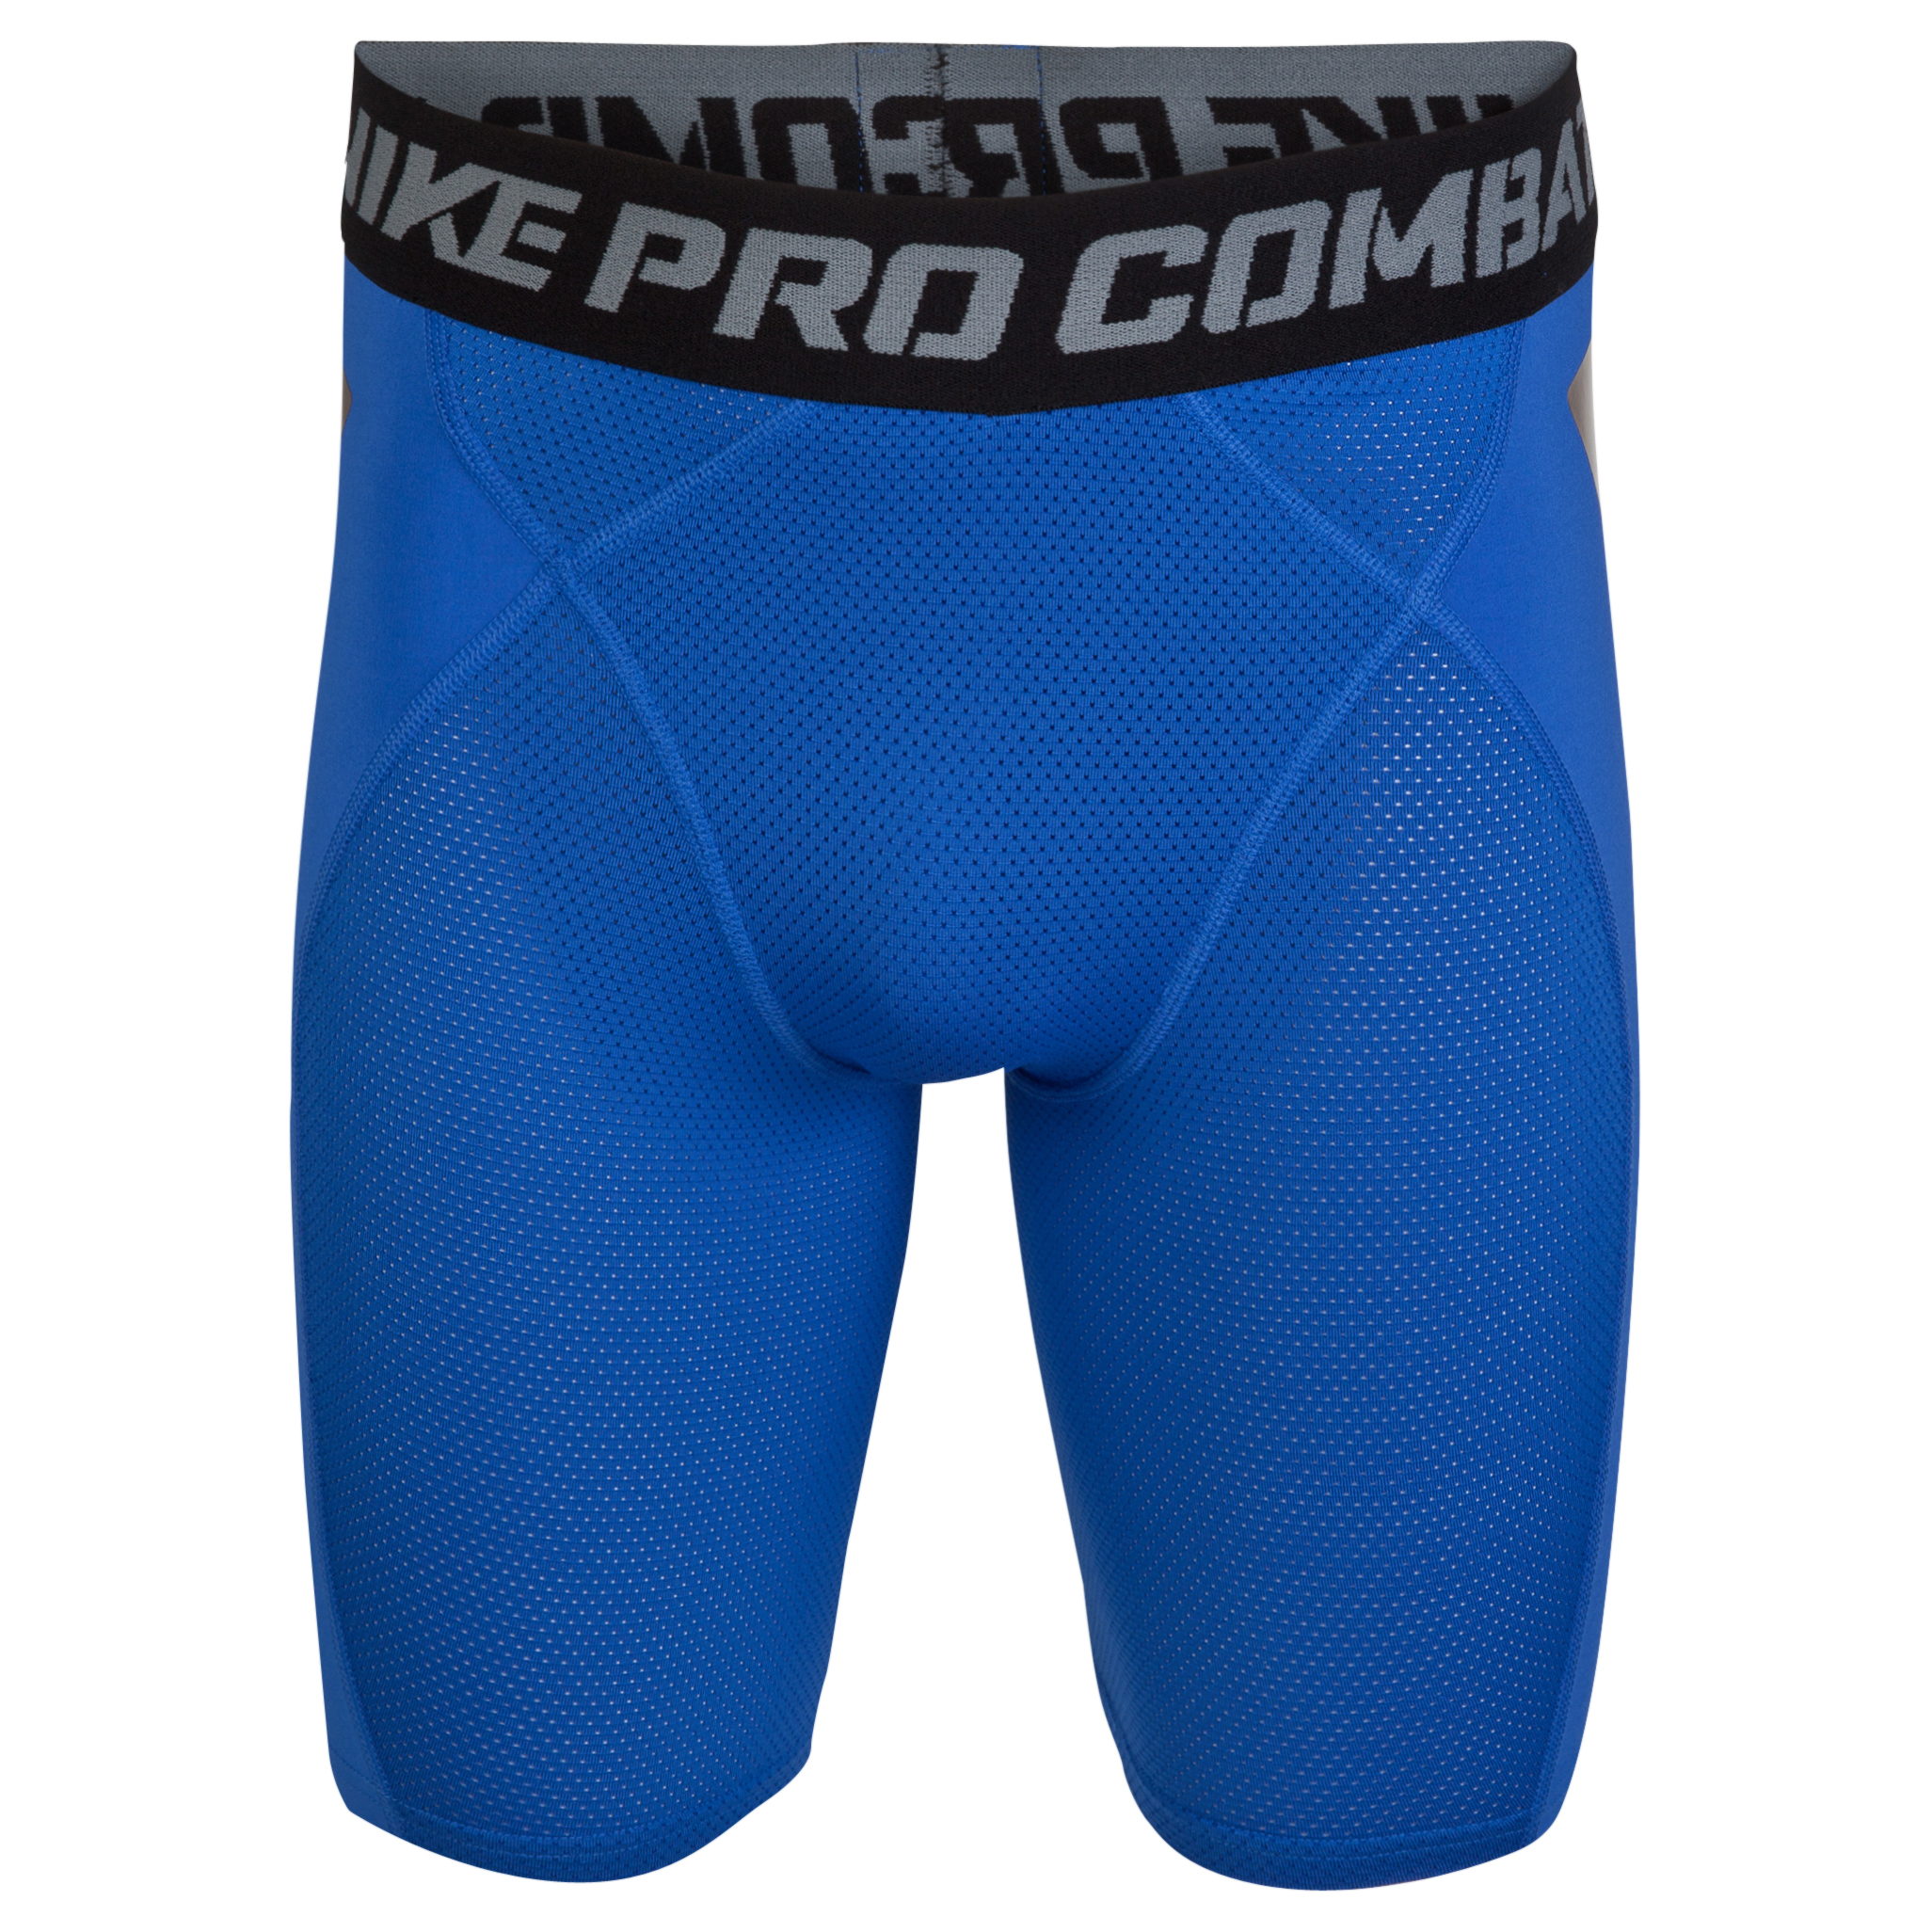 Nike Pro Combat Ultralight Slider Base Layer Short Blue